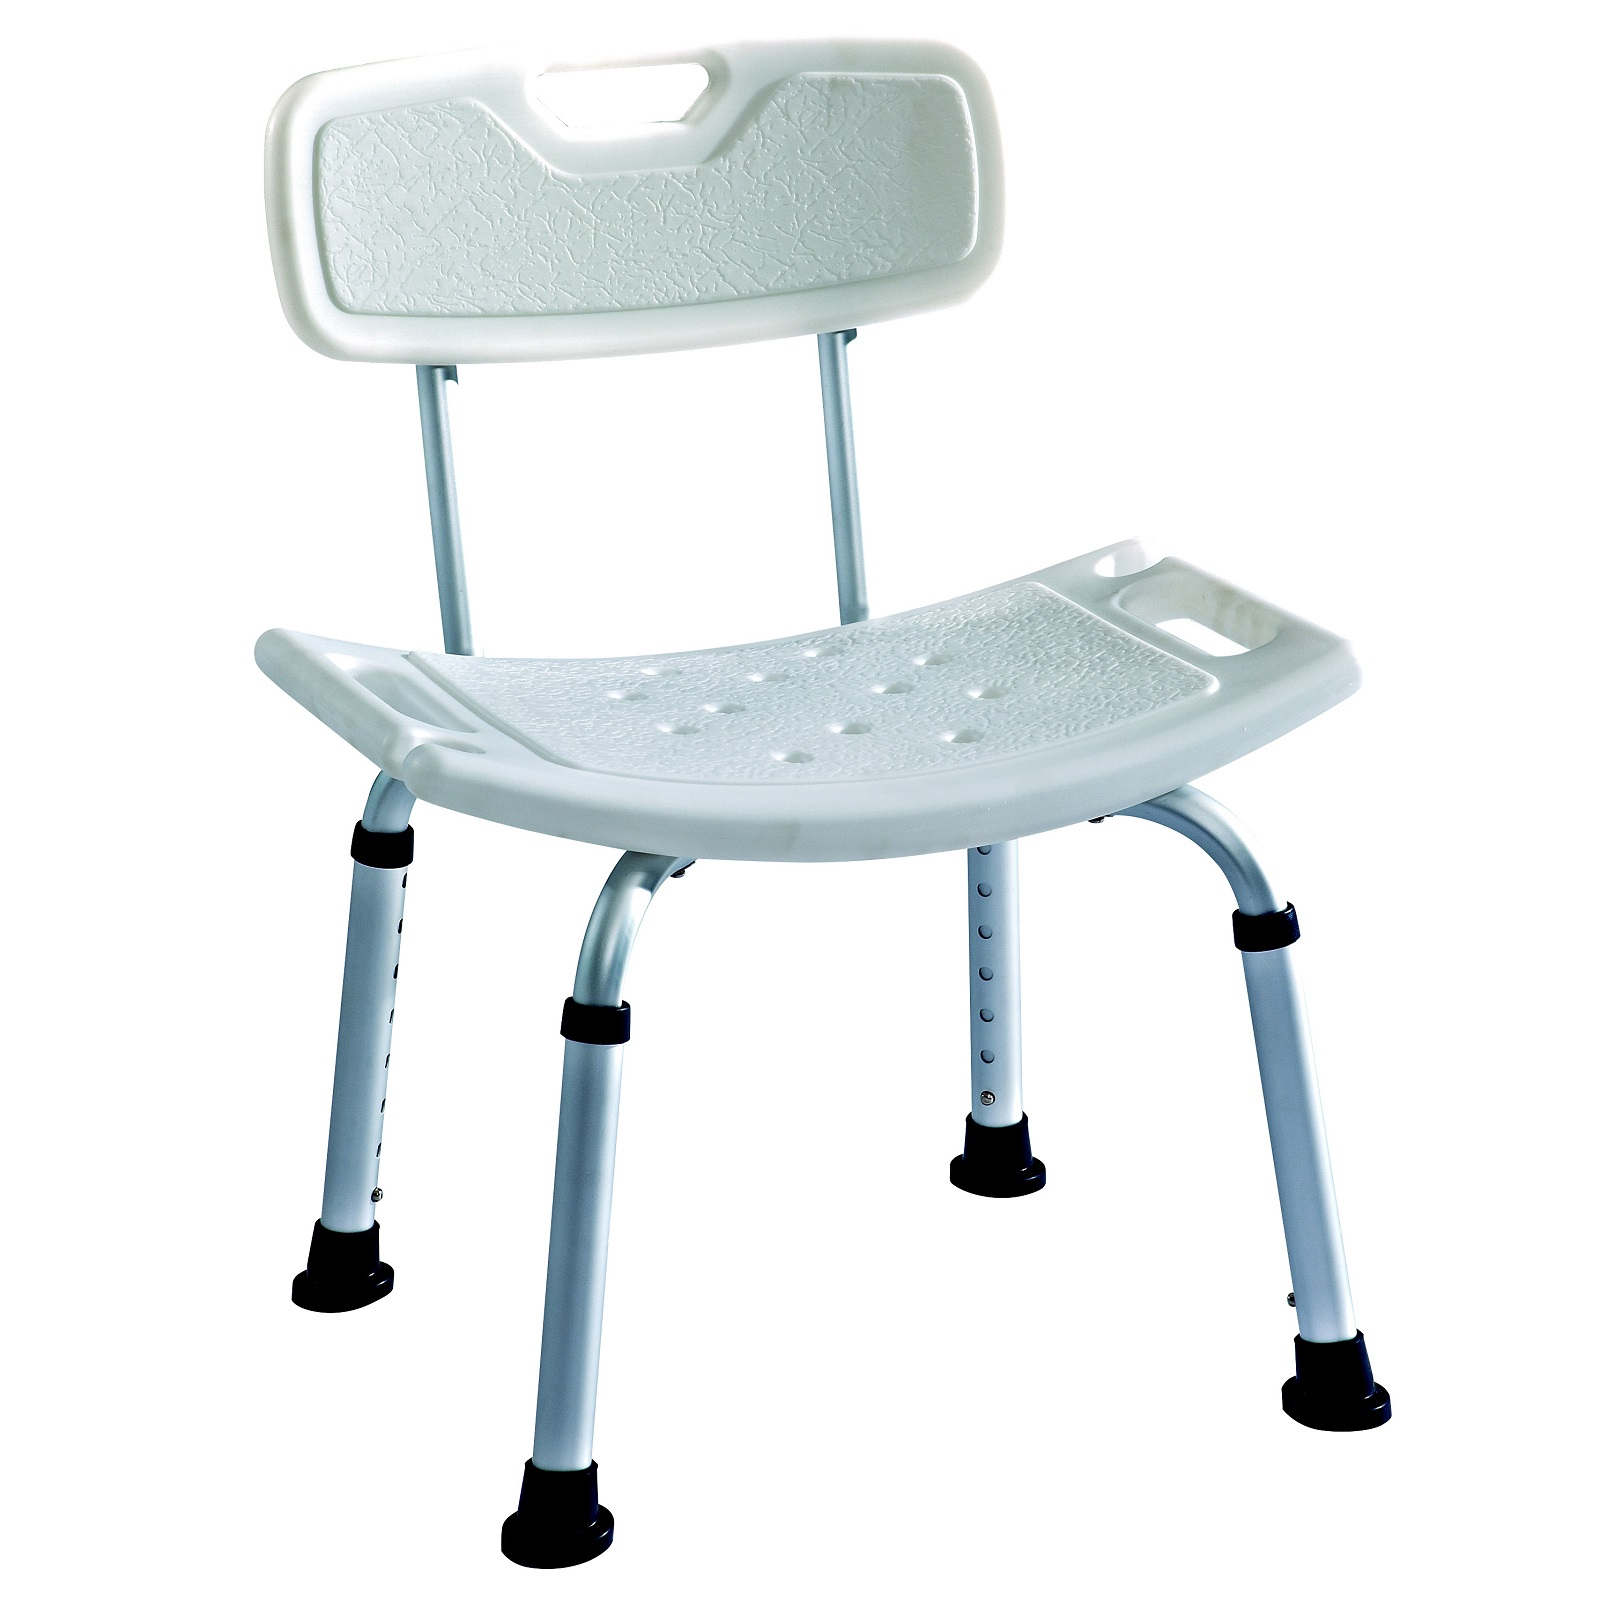 Bath seat / shower stool with backrest - Elite Care Direct